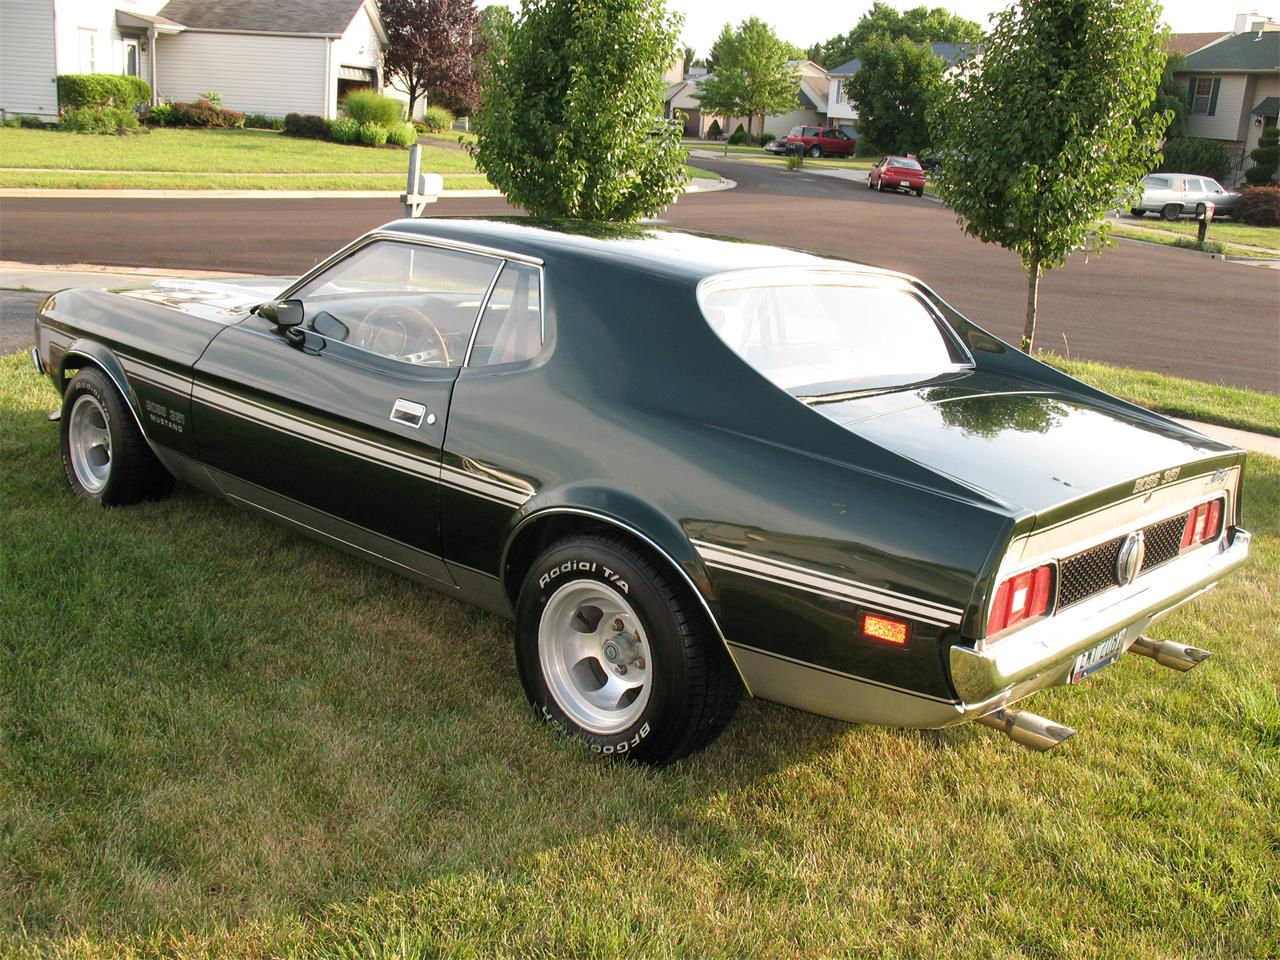 Large Picture of 1972 Ford Mustang located in Ohio - $9,995.00 Offered by a Private Seller - E7KK